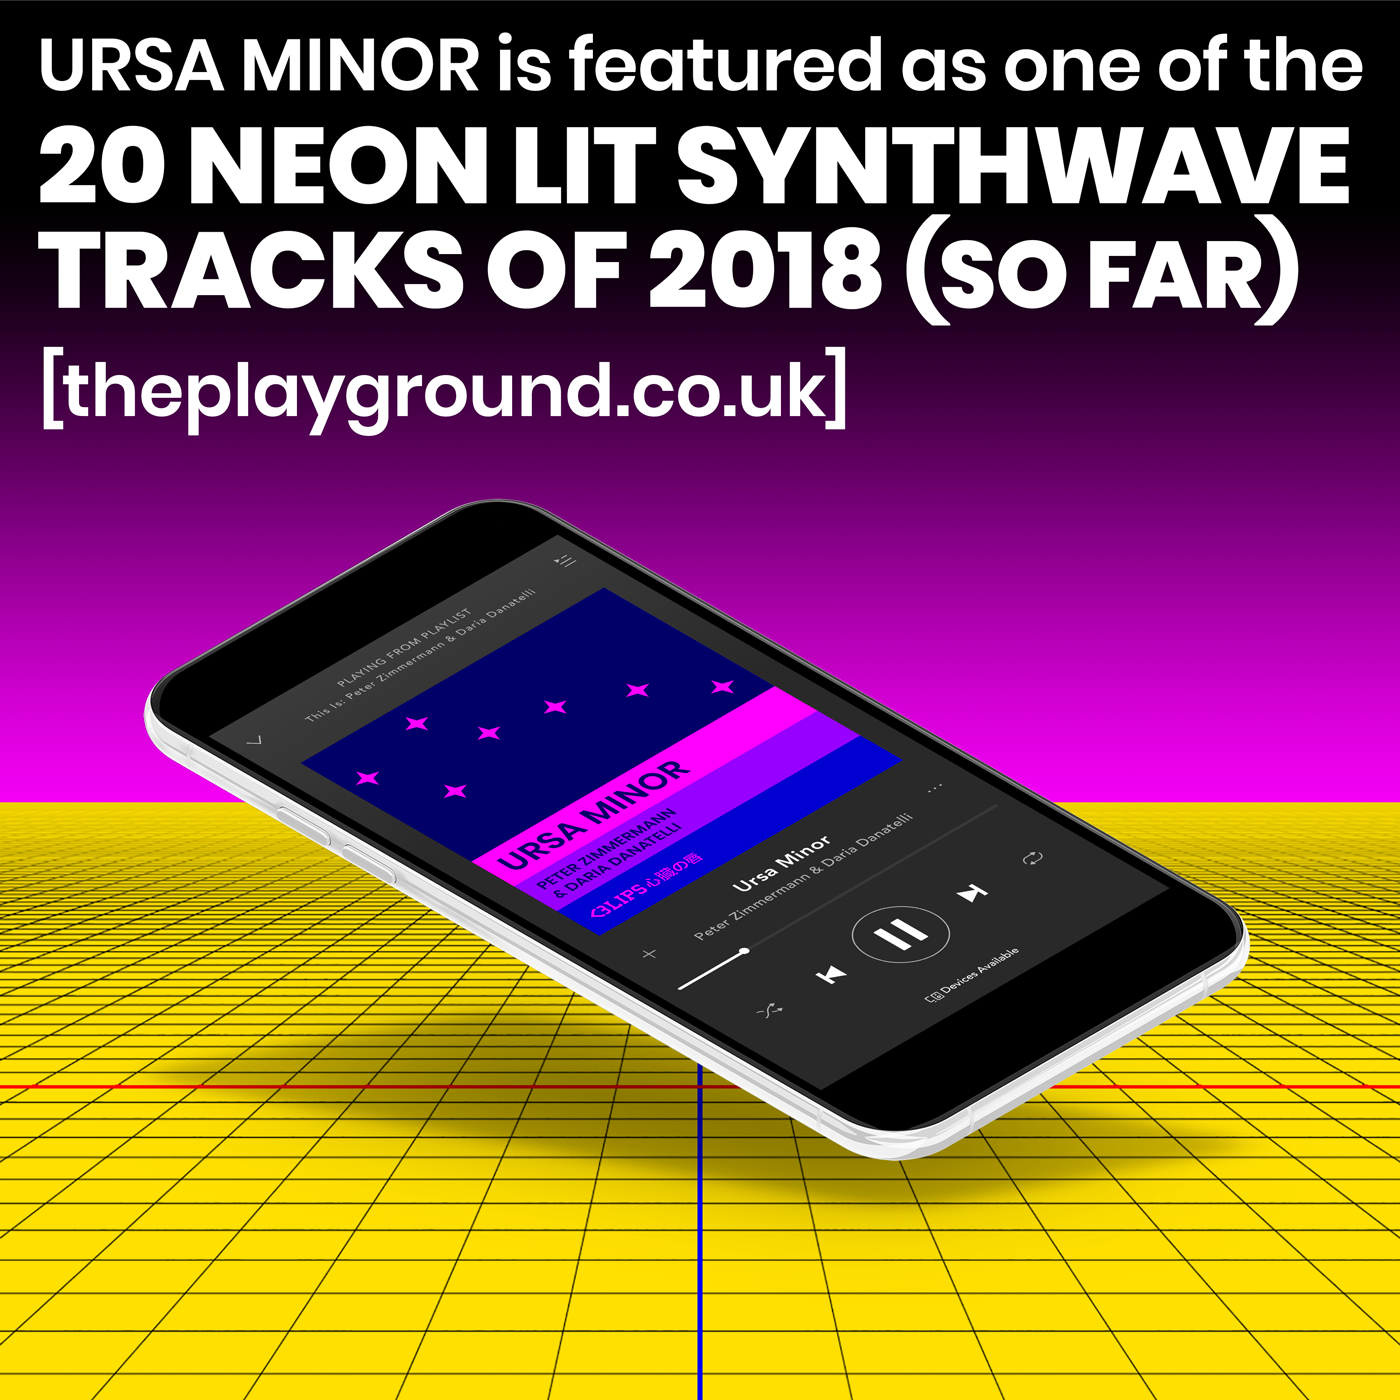 ursa-minor-spotify-last